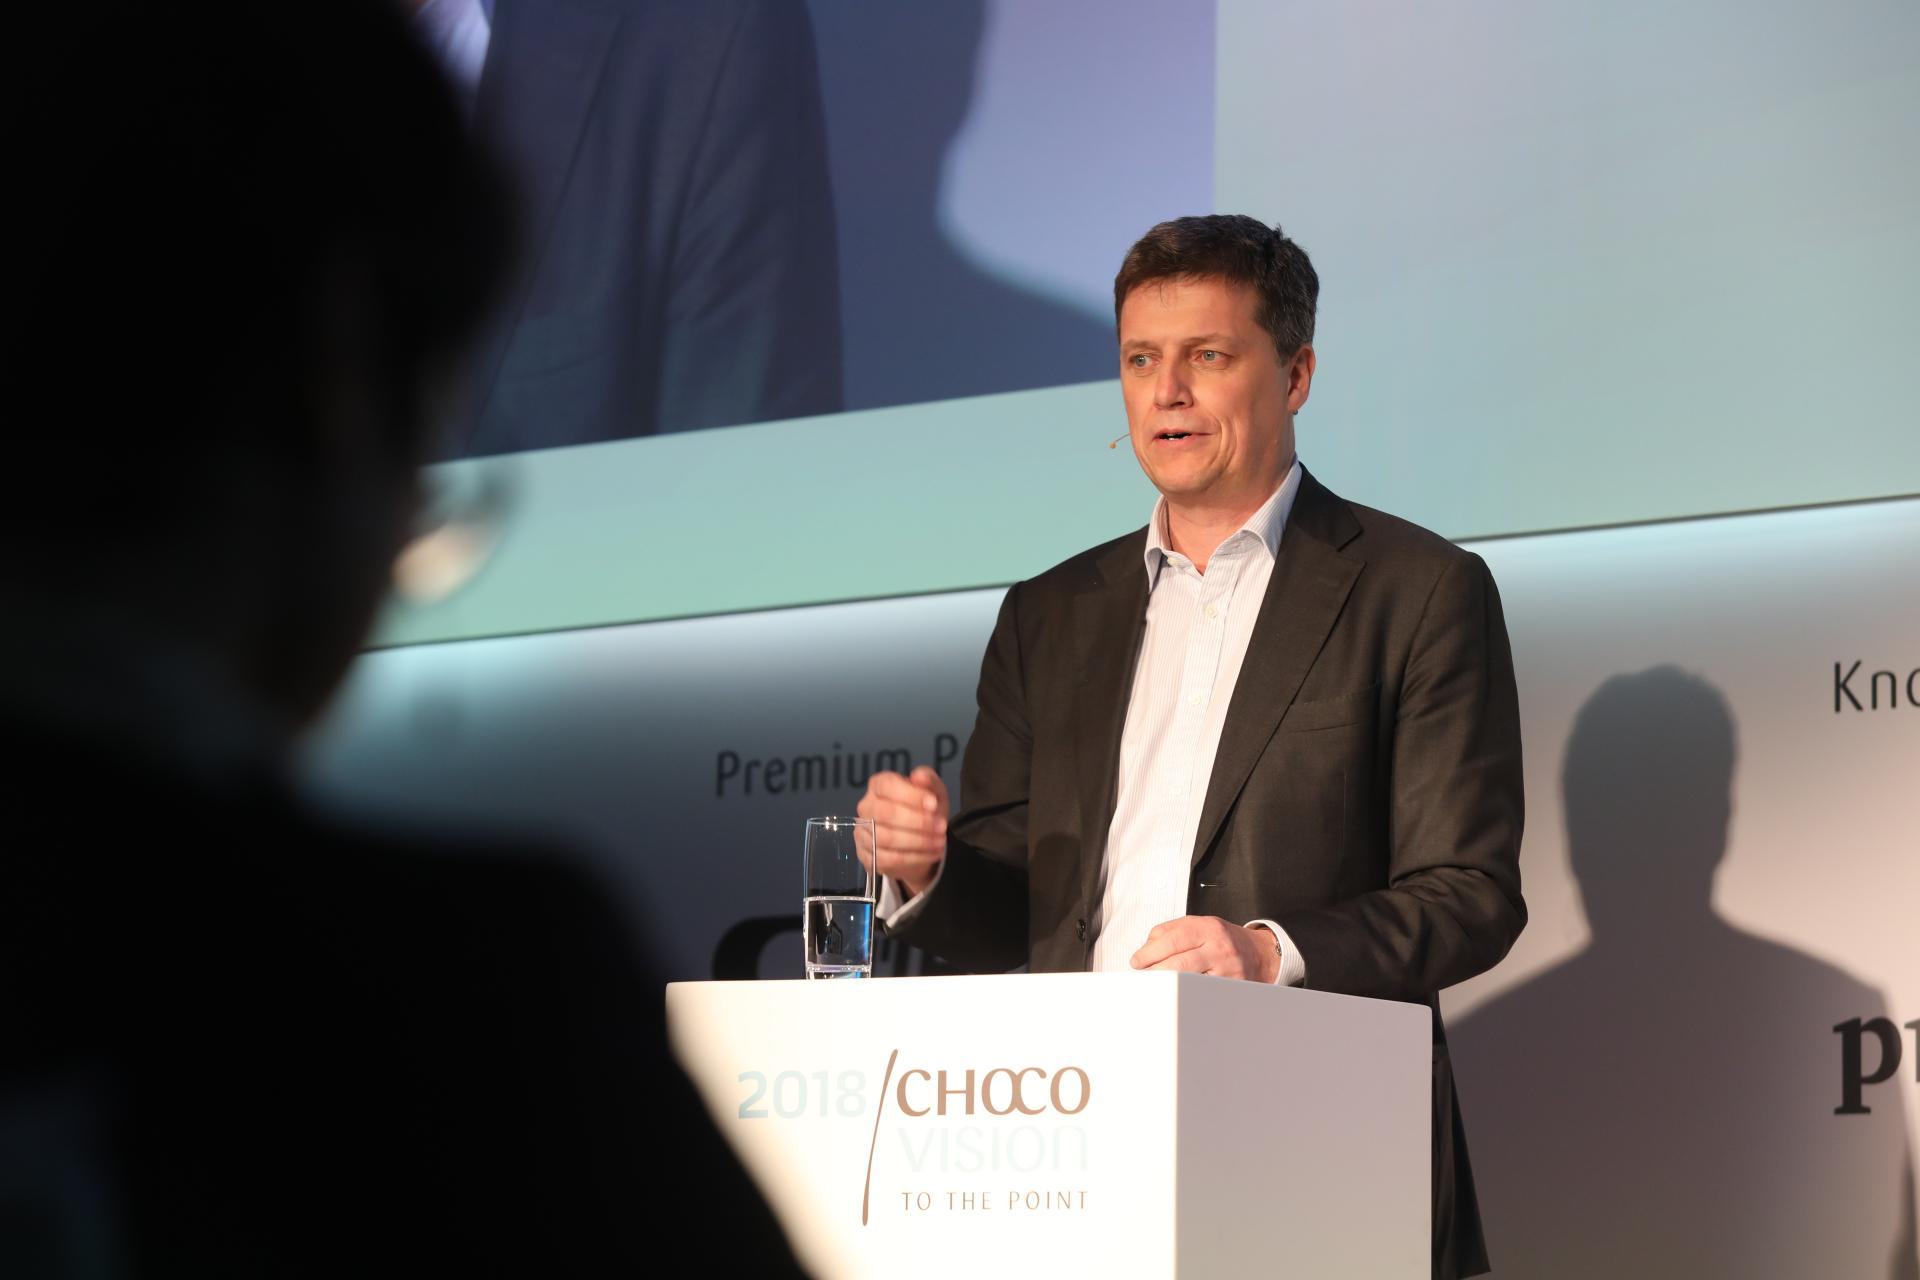 Antoine de Saint-Affrique's Closing Remark at CHOCOVISION 2018